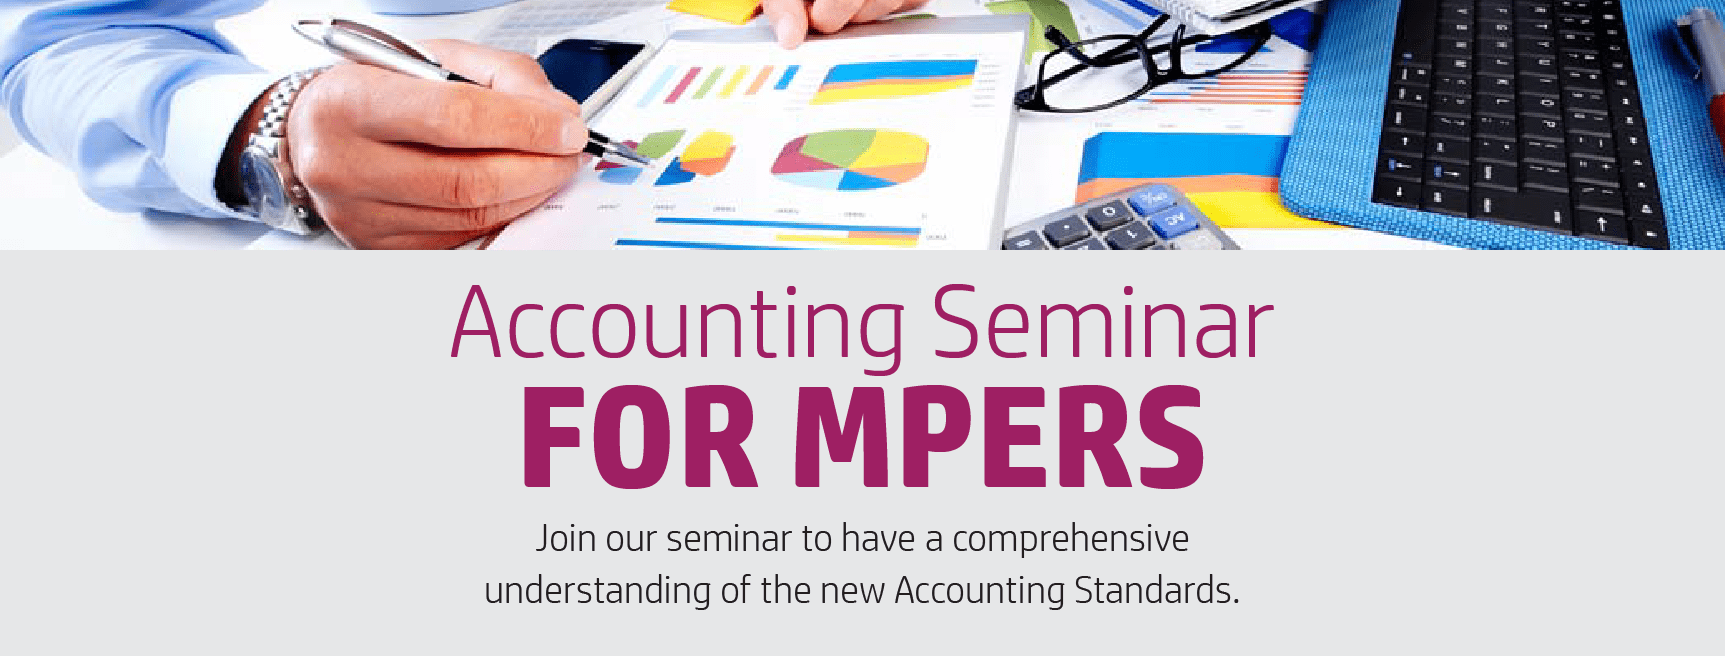 MPERS Accounting Workshop Event Page-01